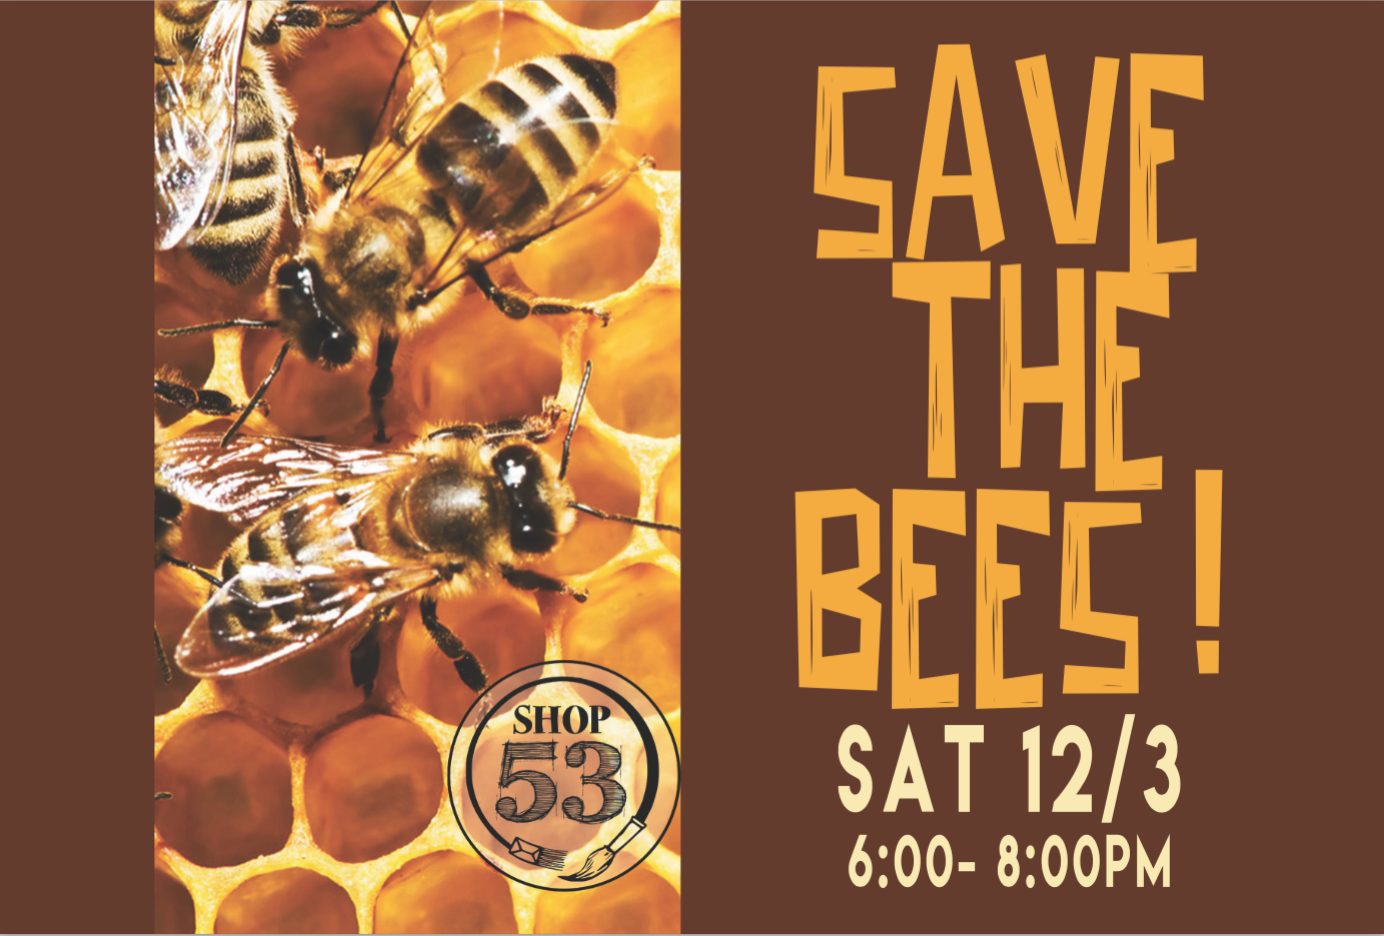 SAVE THE BEES WINTER 2017